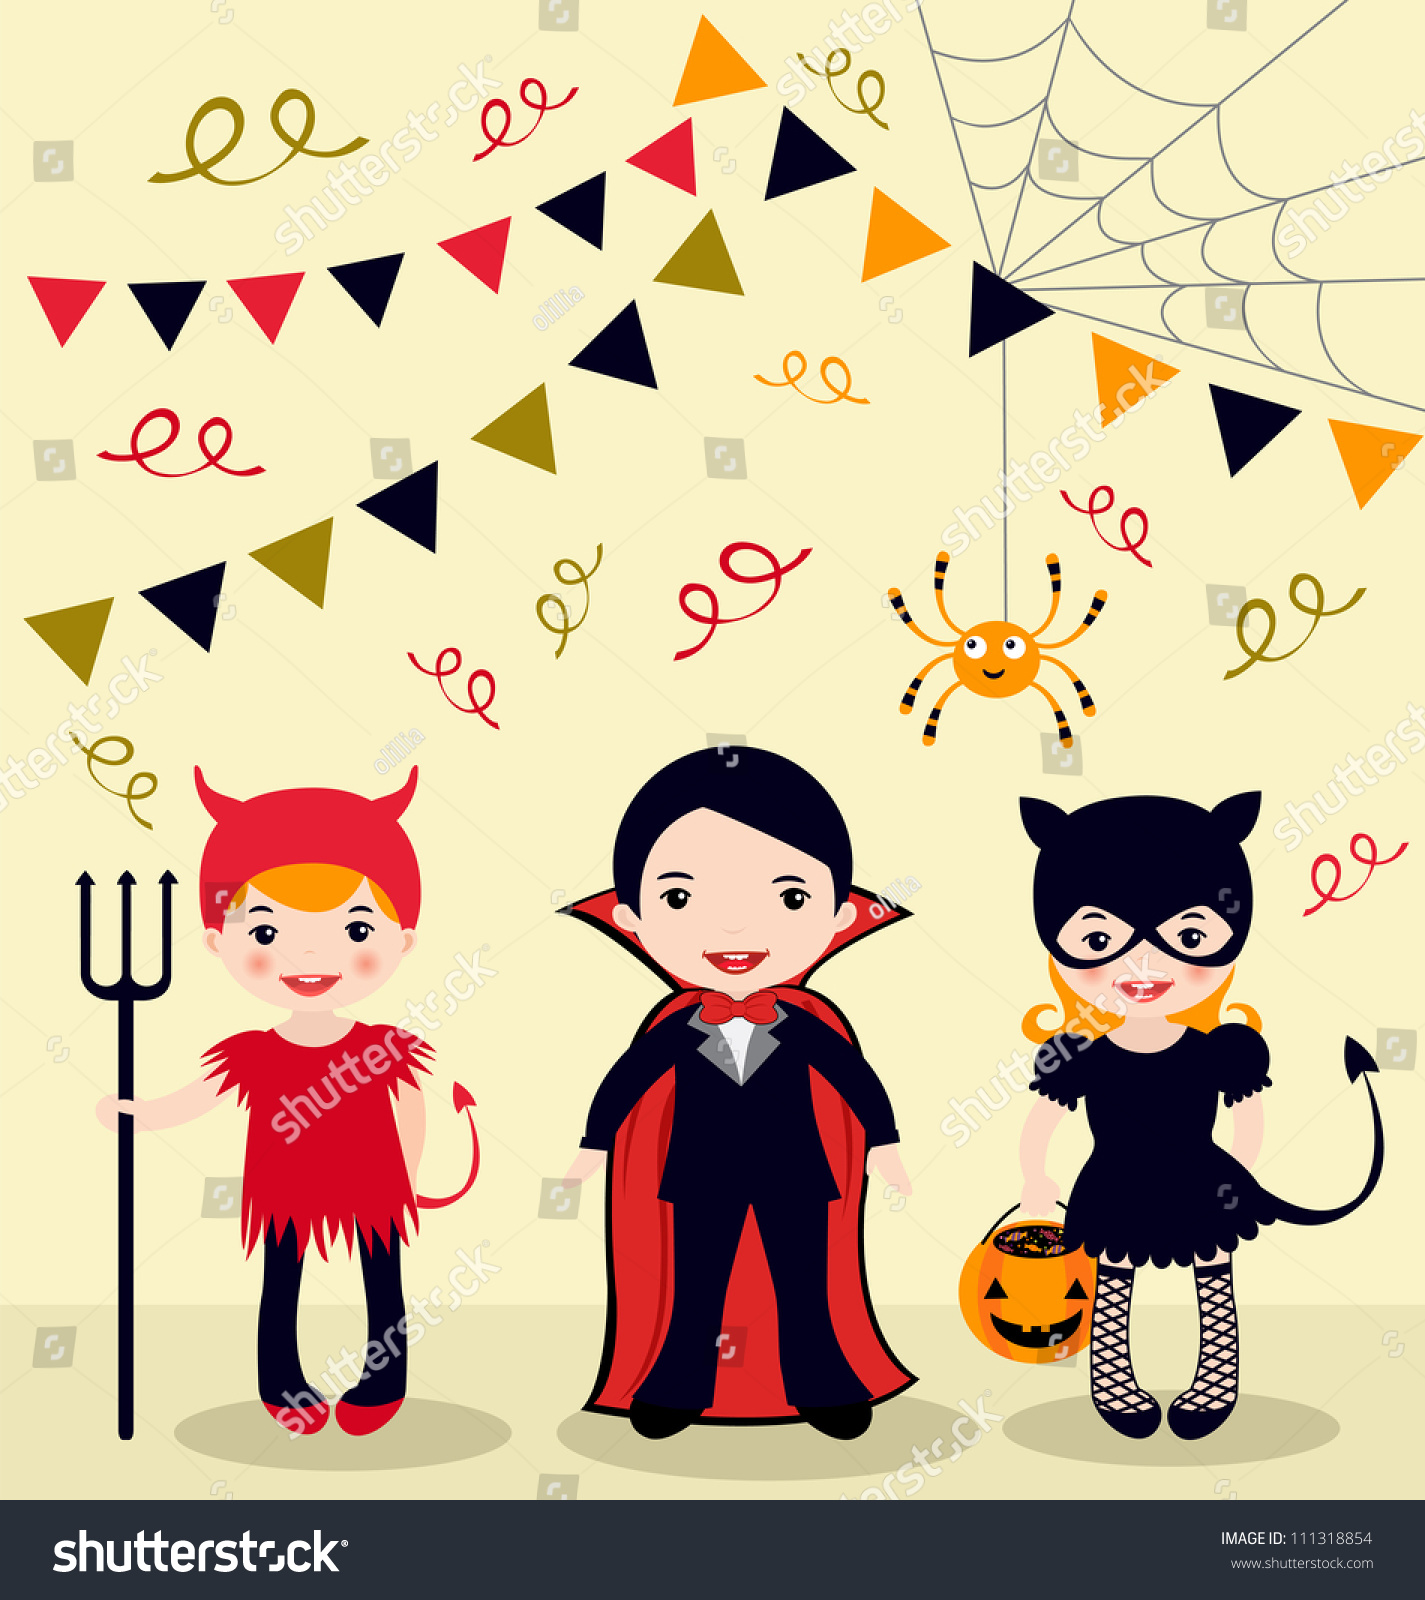 An Illustration Of Halloween Party Kids - 111318854 : Shutterstock